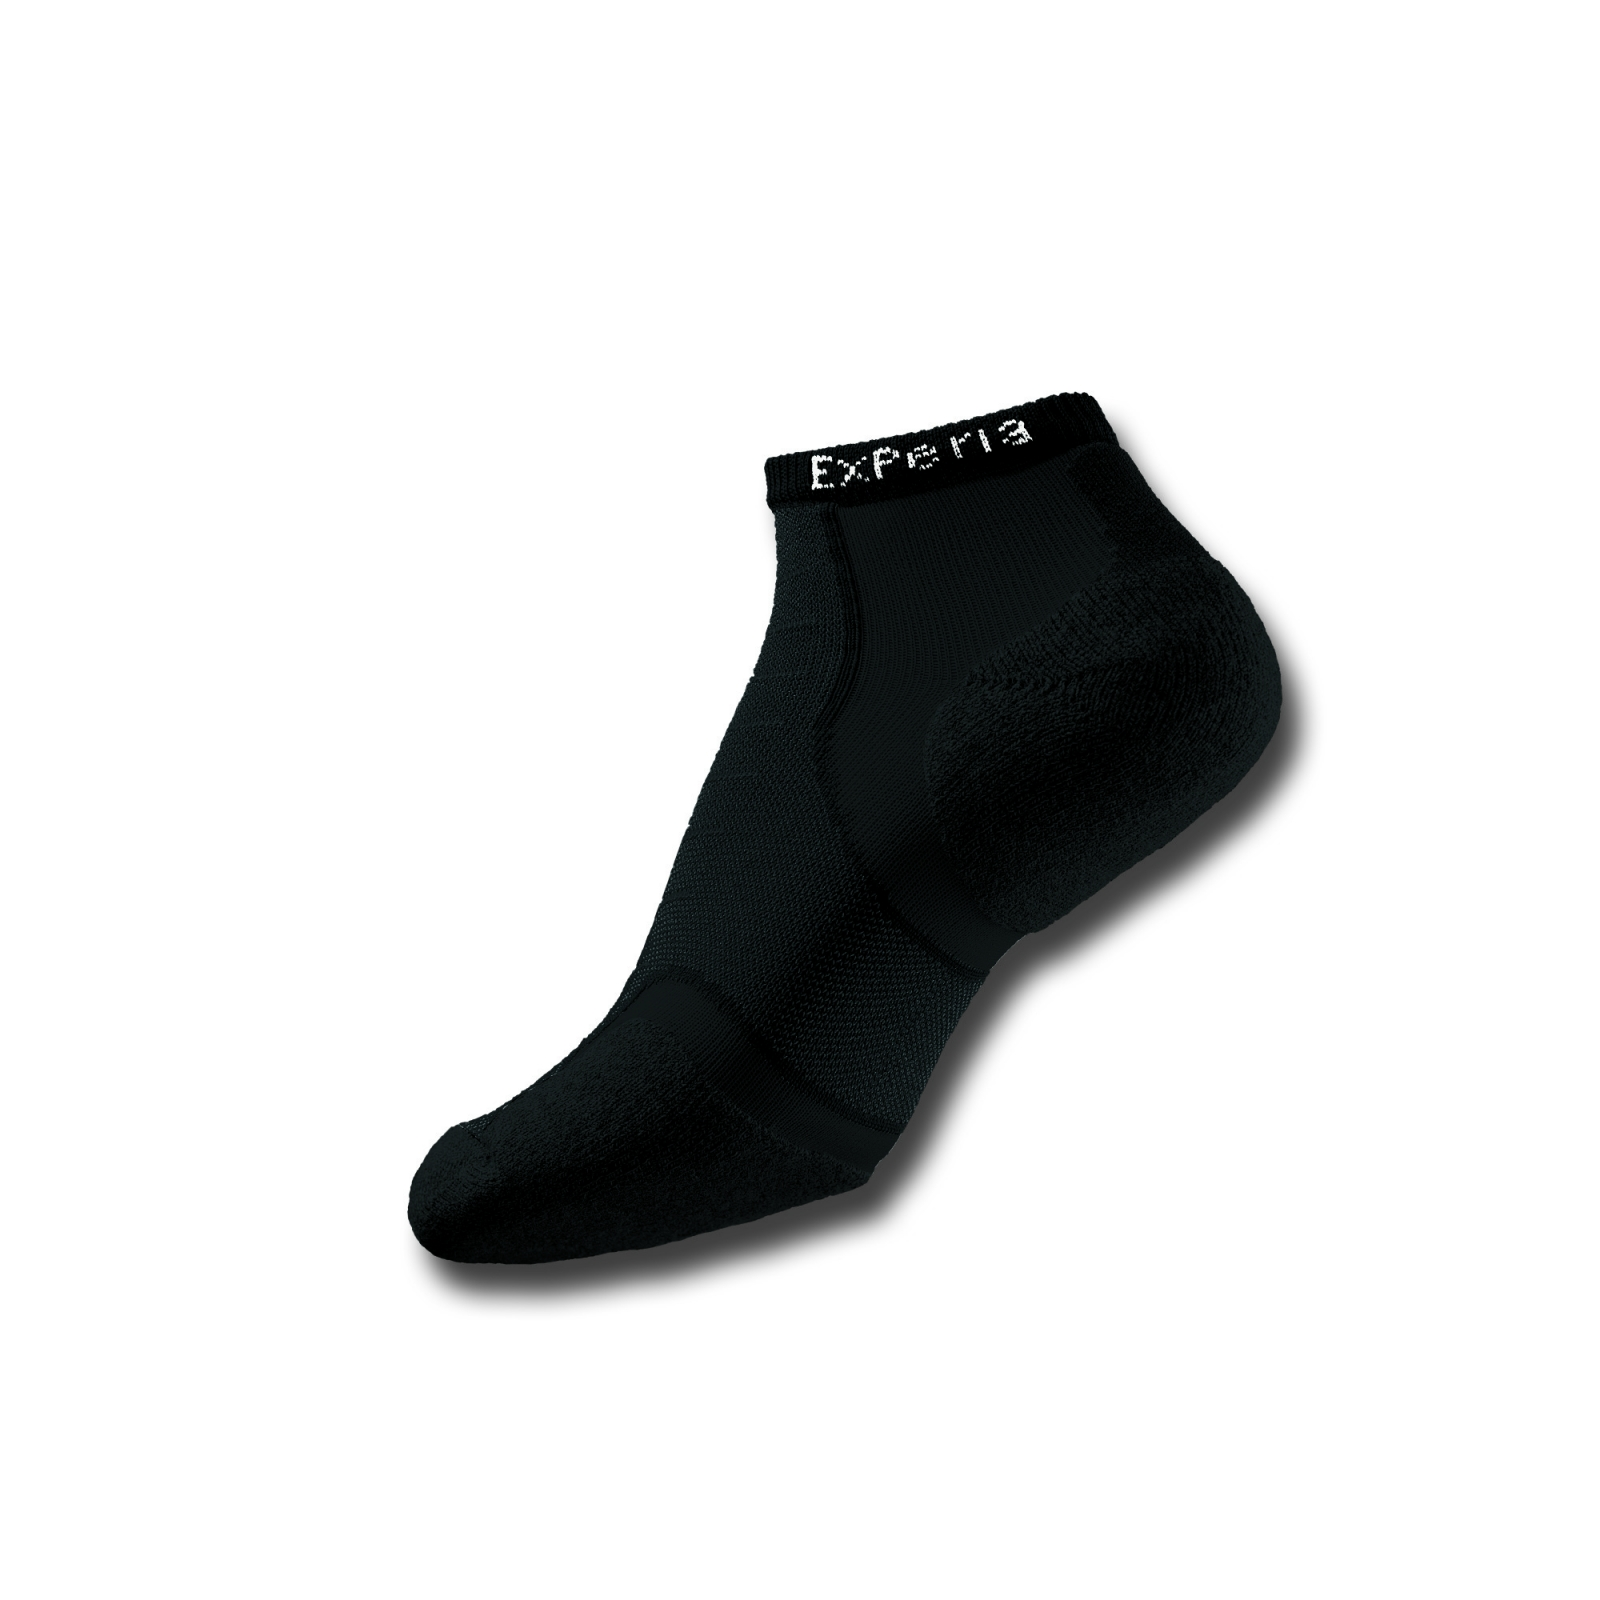 Thorlo Experia - Black